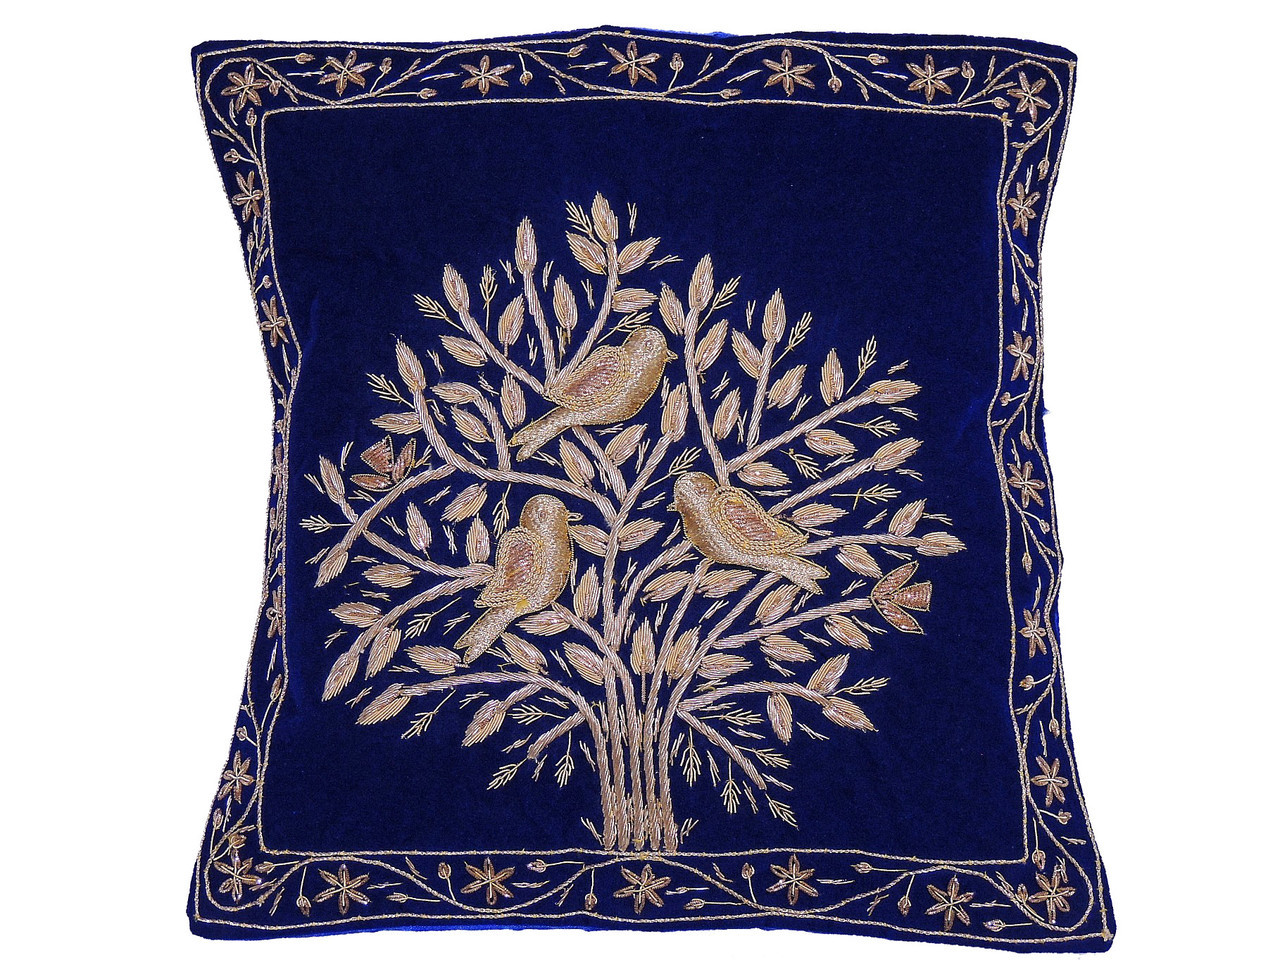 Groovy Blue Tree Of Life Pillowcase Dabka Handmade Velvet Couch Cushion 16 Theyellowbook Wood Chair Design Ideas Theyellowbookinfo